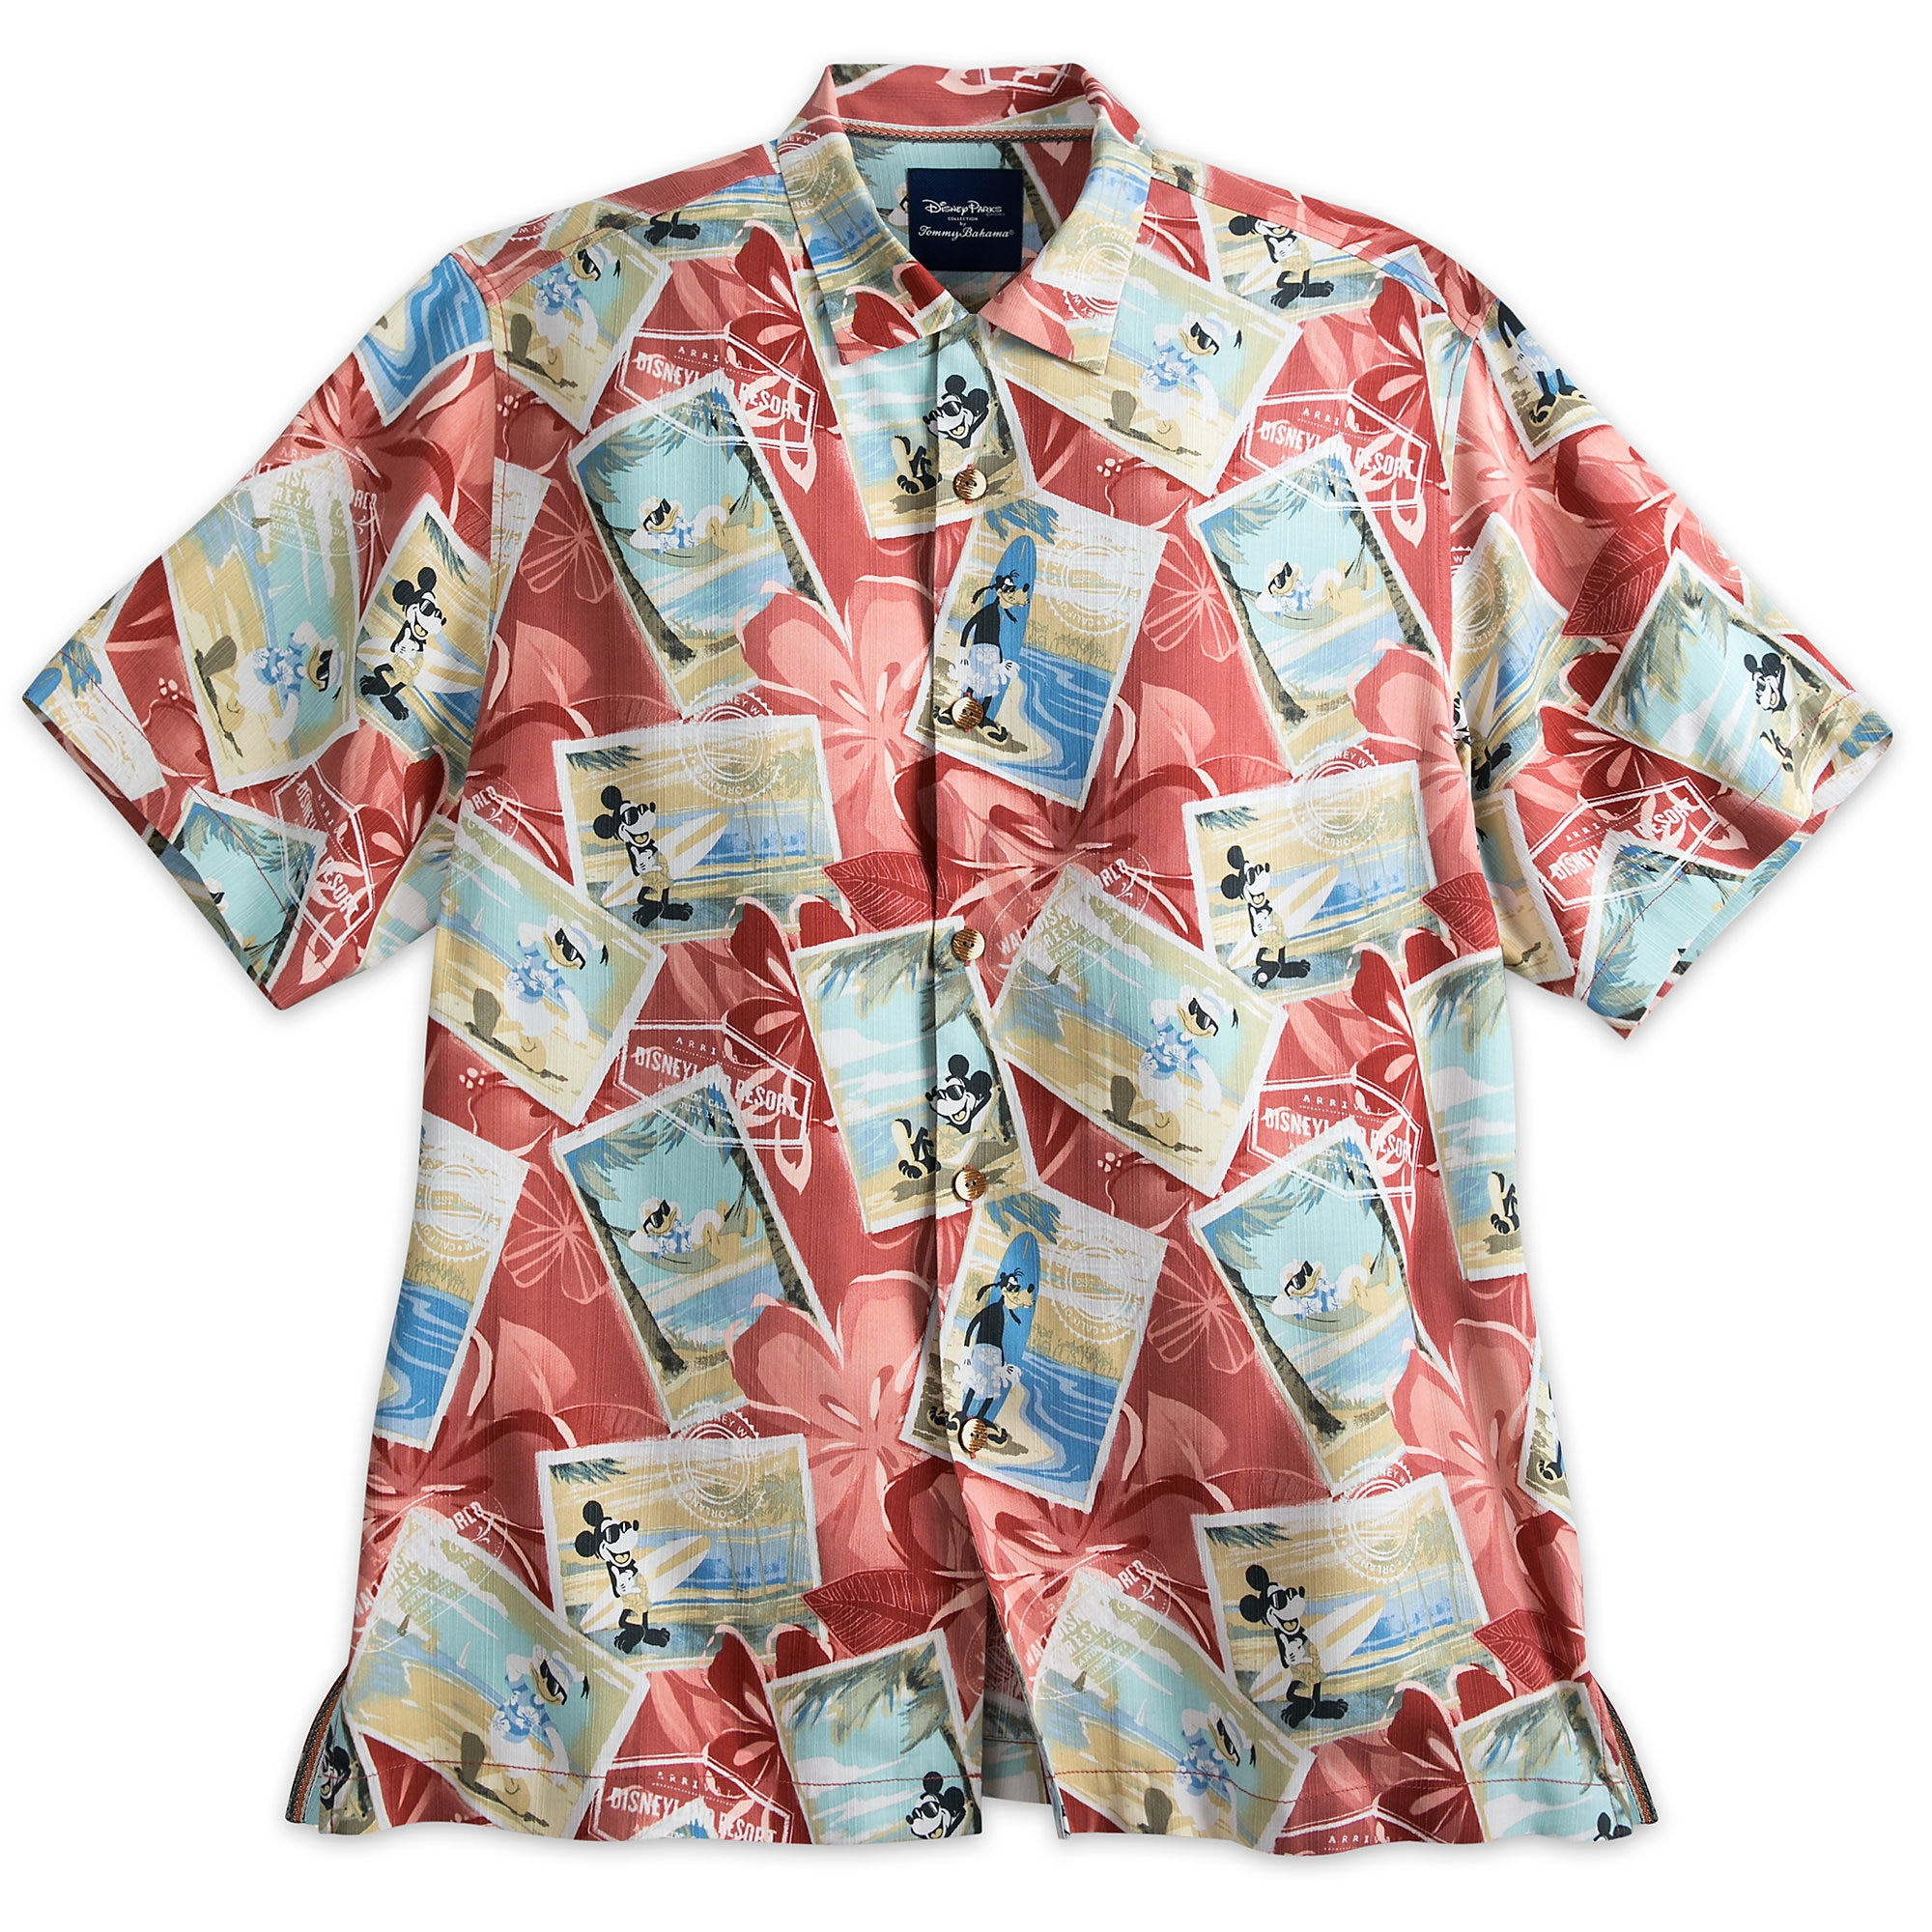 e825915c1 Mickey Mouse and Friends Silk Shirt for Men by Tommy Bahama - Red |  shopDisney